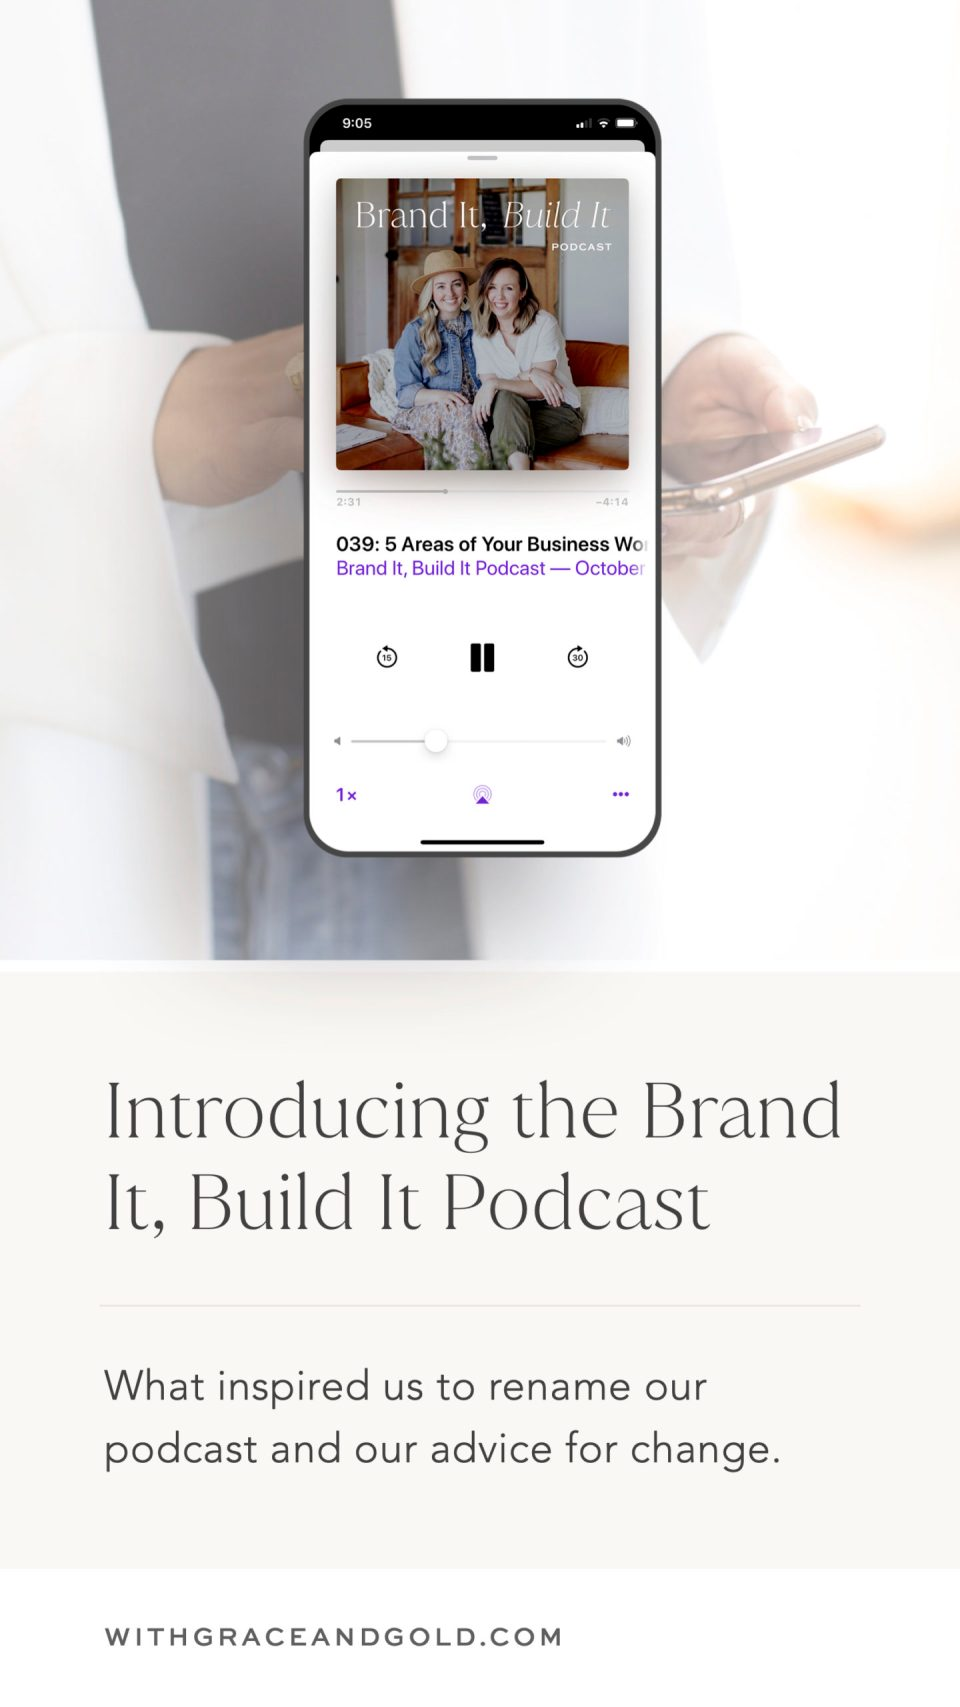 The Brand It Build It Podcast by With Grace and Gold and The Preset Market